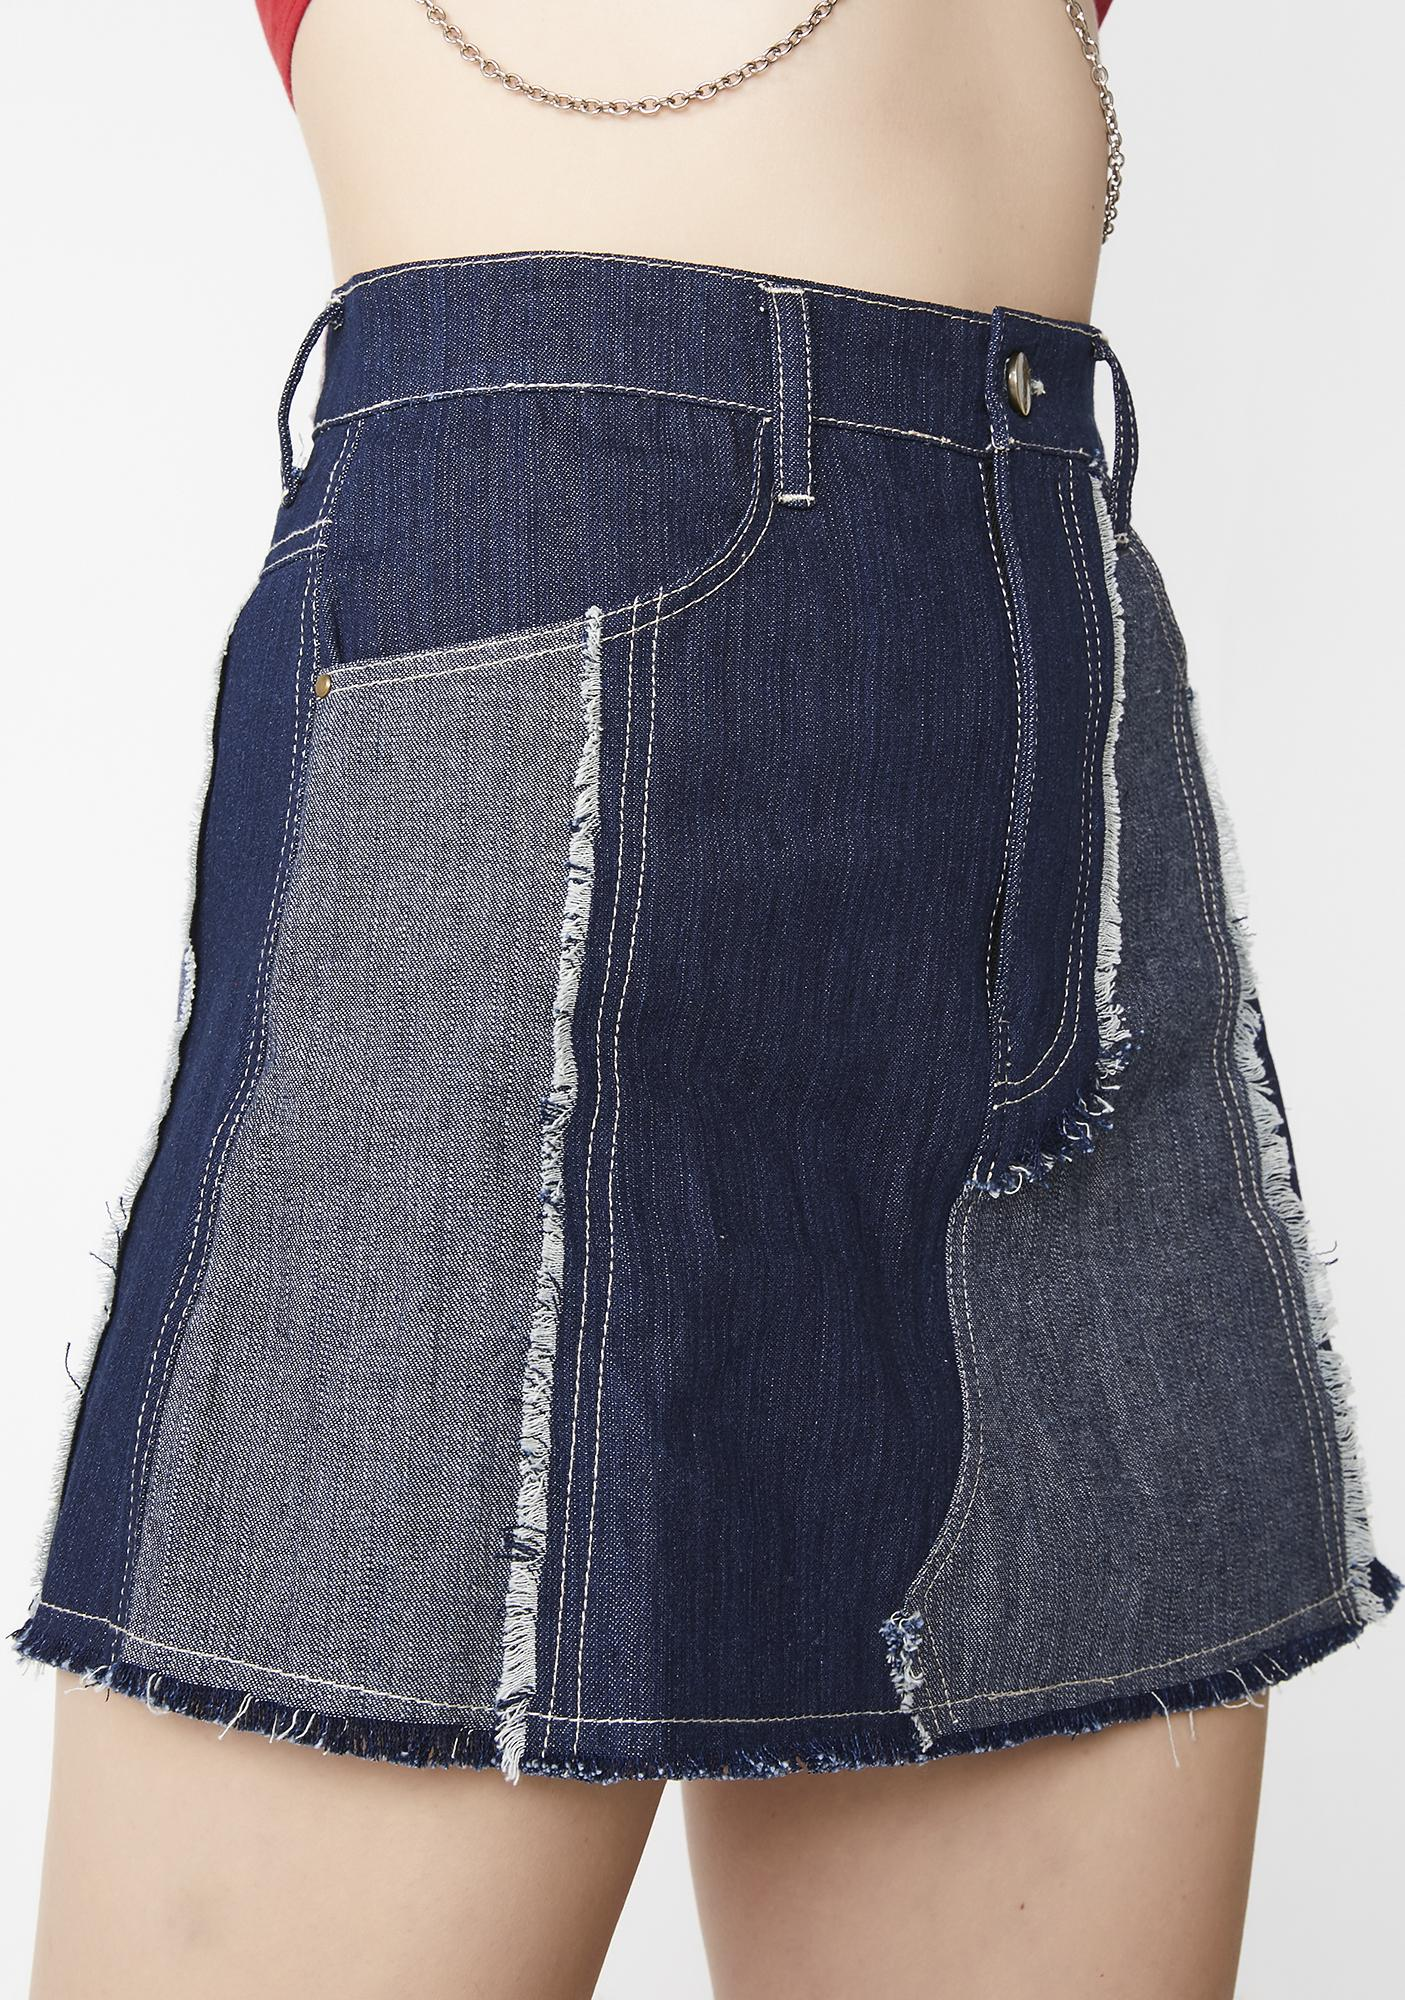 Cute Mistake Elisha Denim Skirt